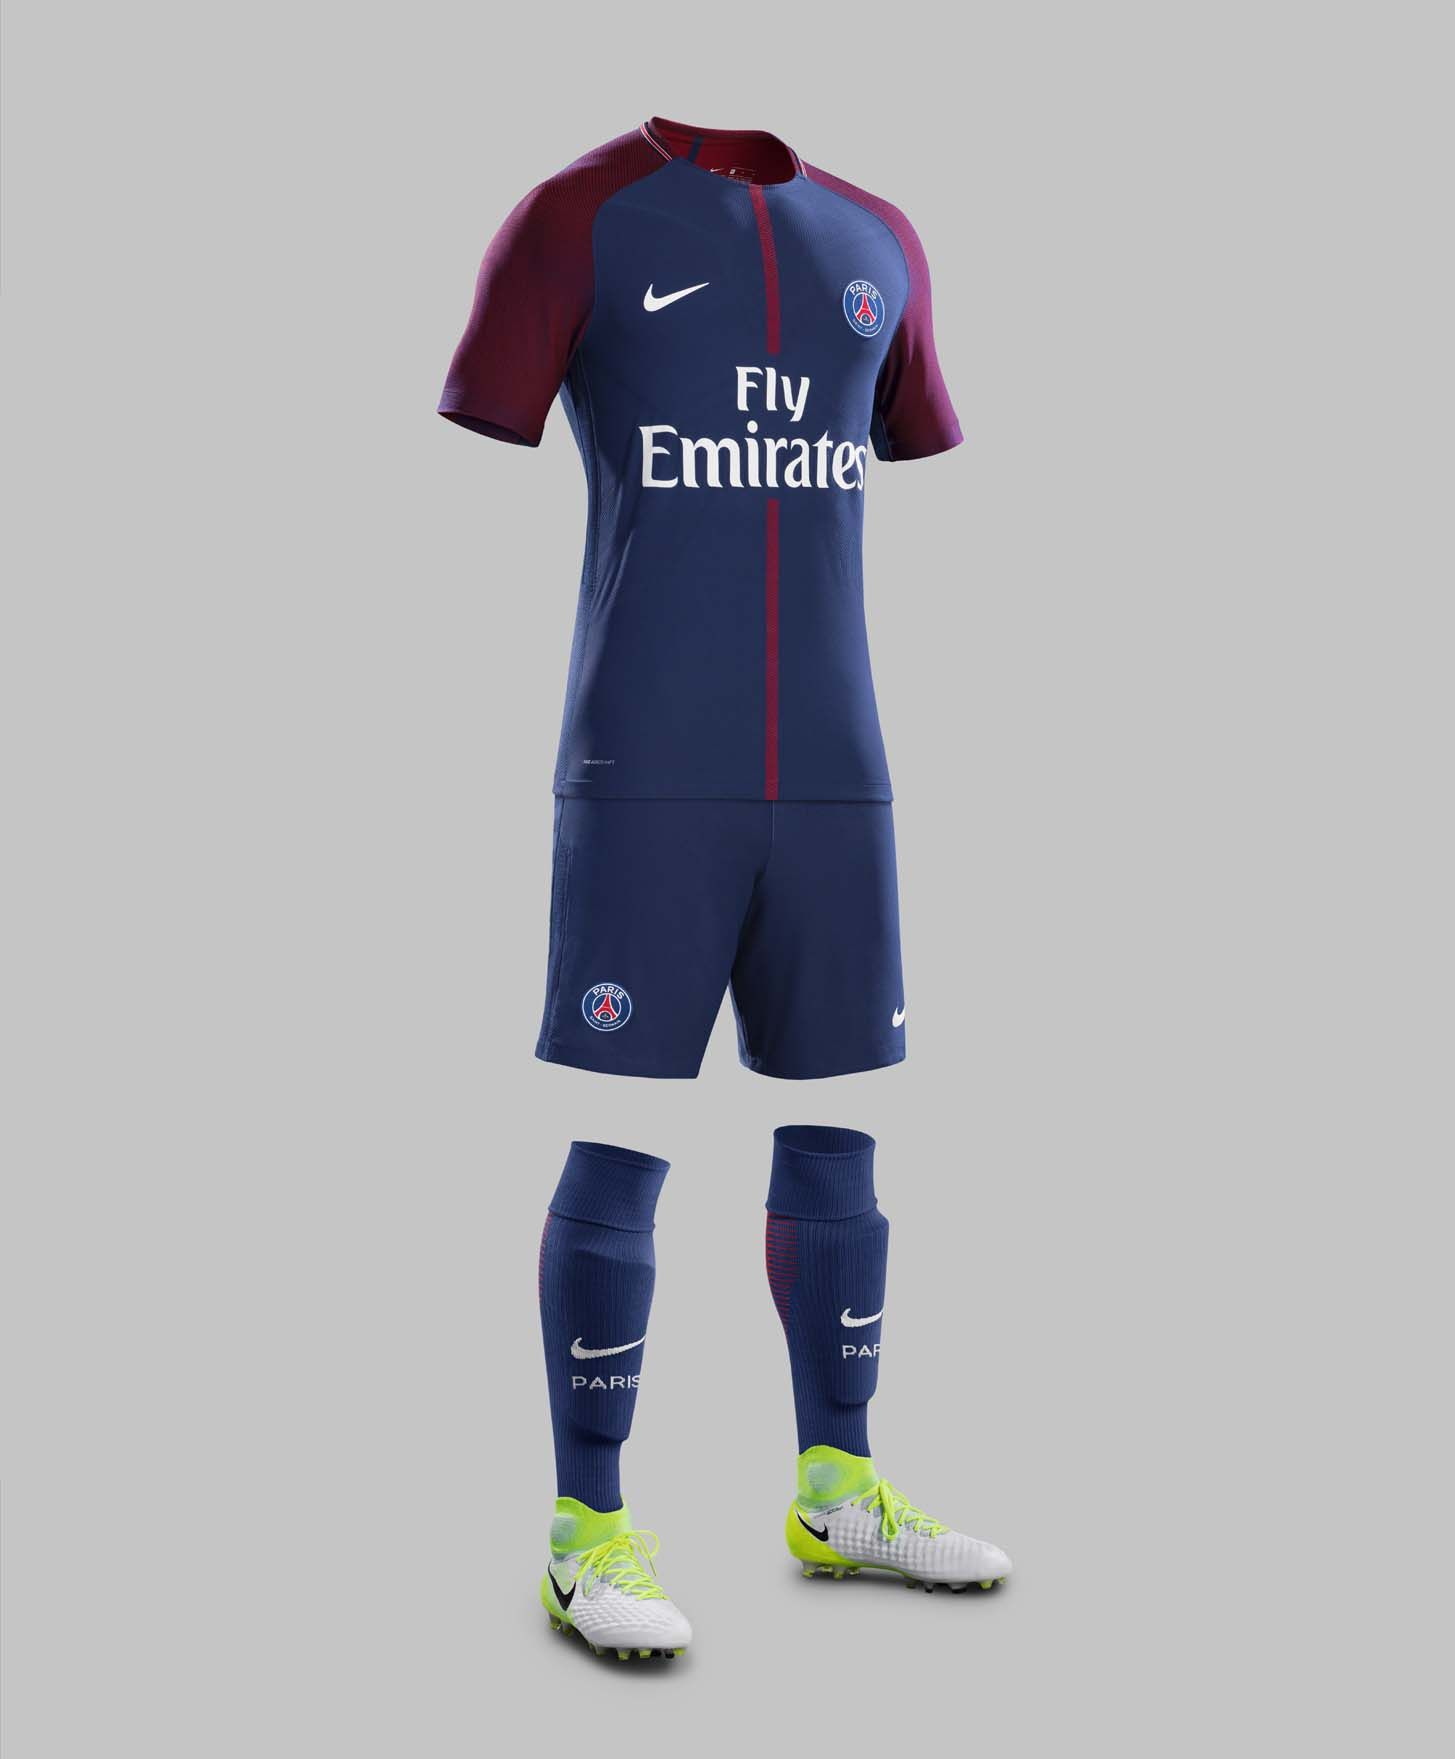 The PSG home kit introduces a more vibrant, bolder look than most recent  ones. It& once again made by long-term PSG jersey supplier Nike.